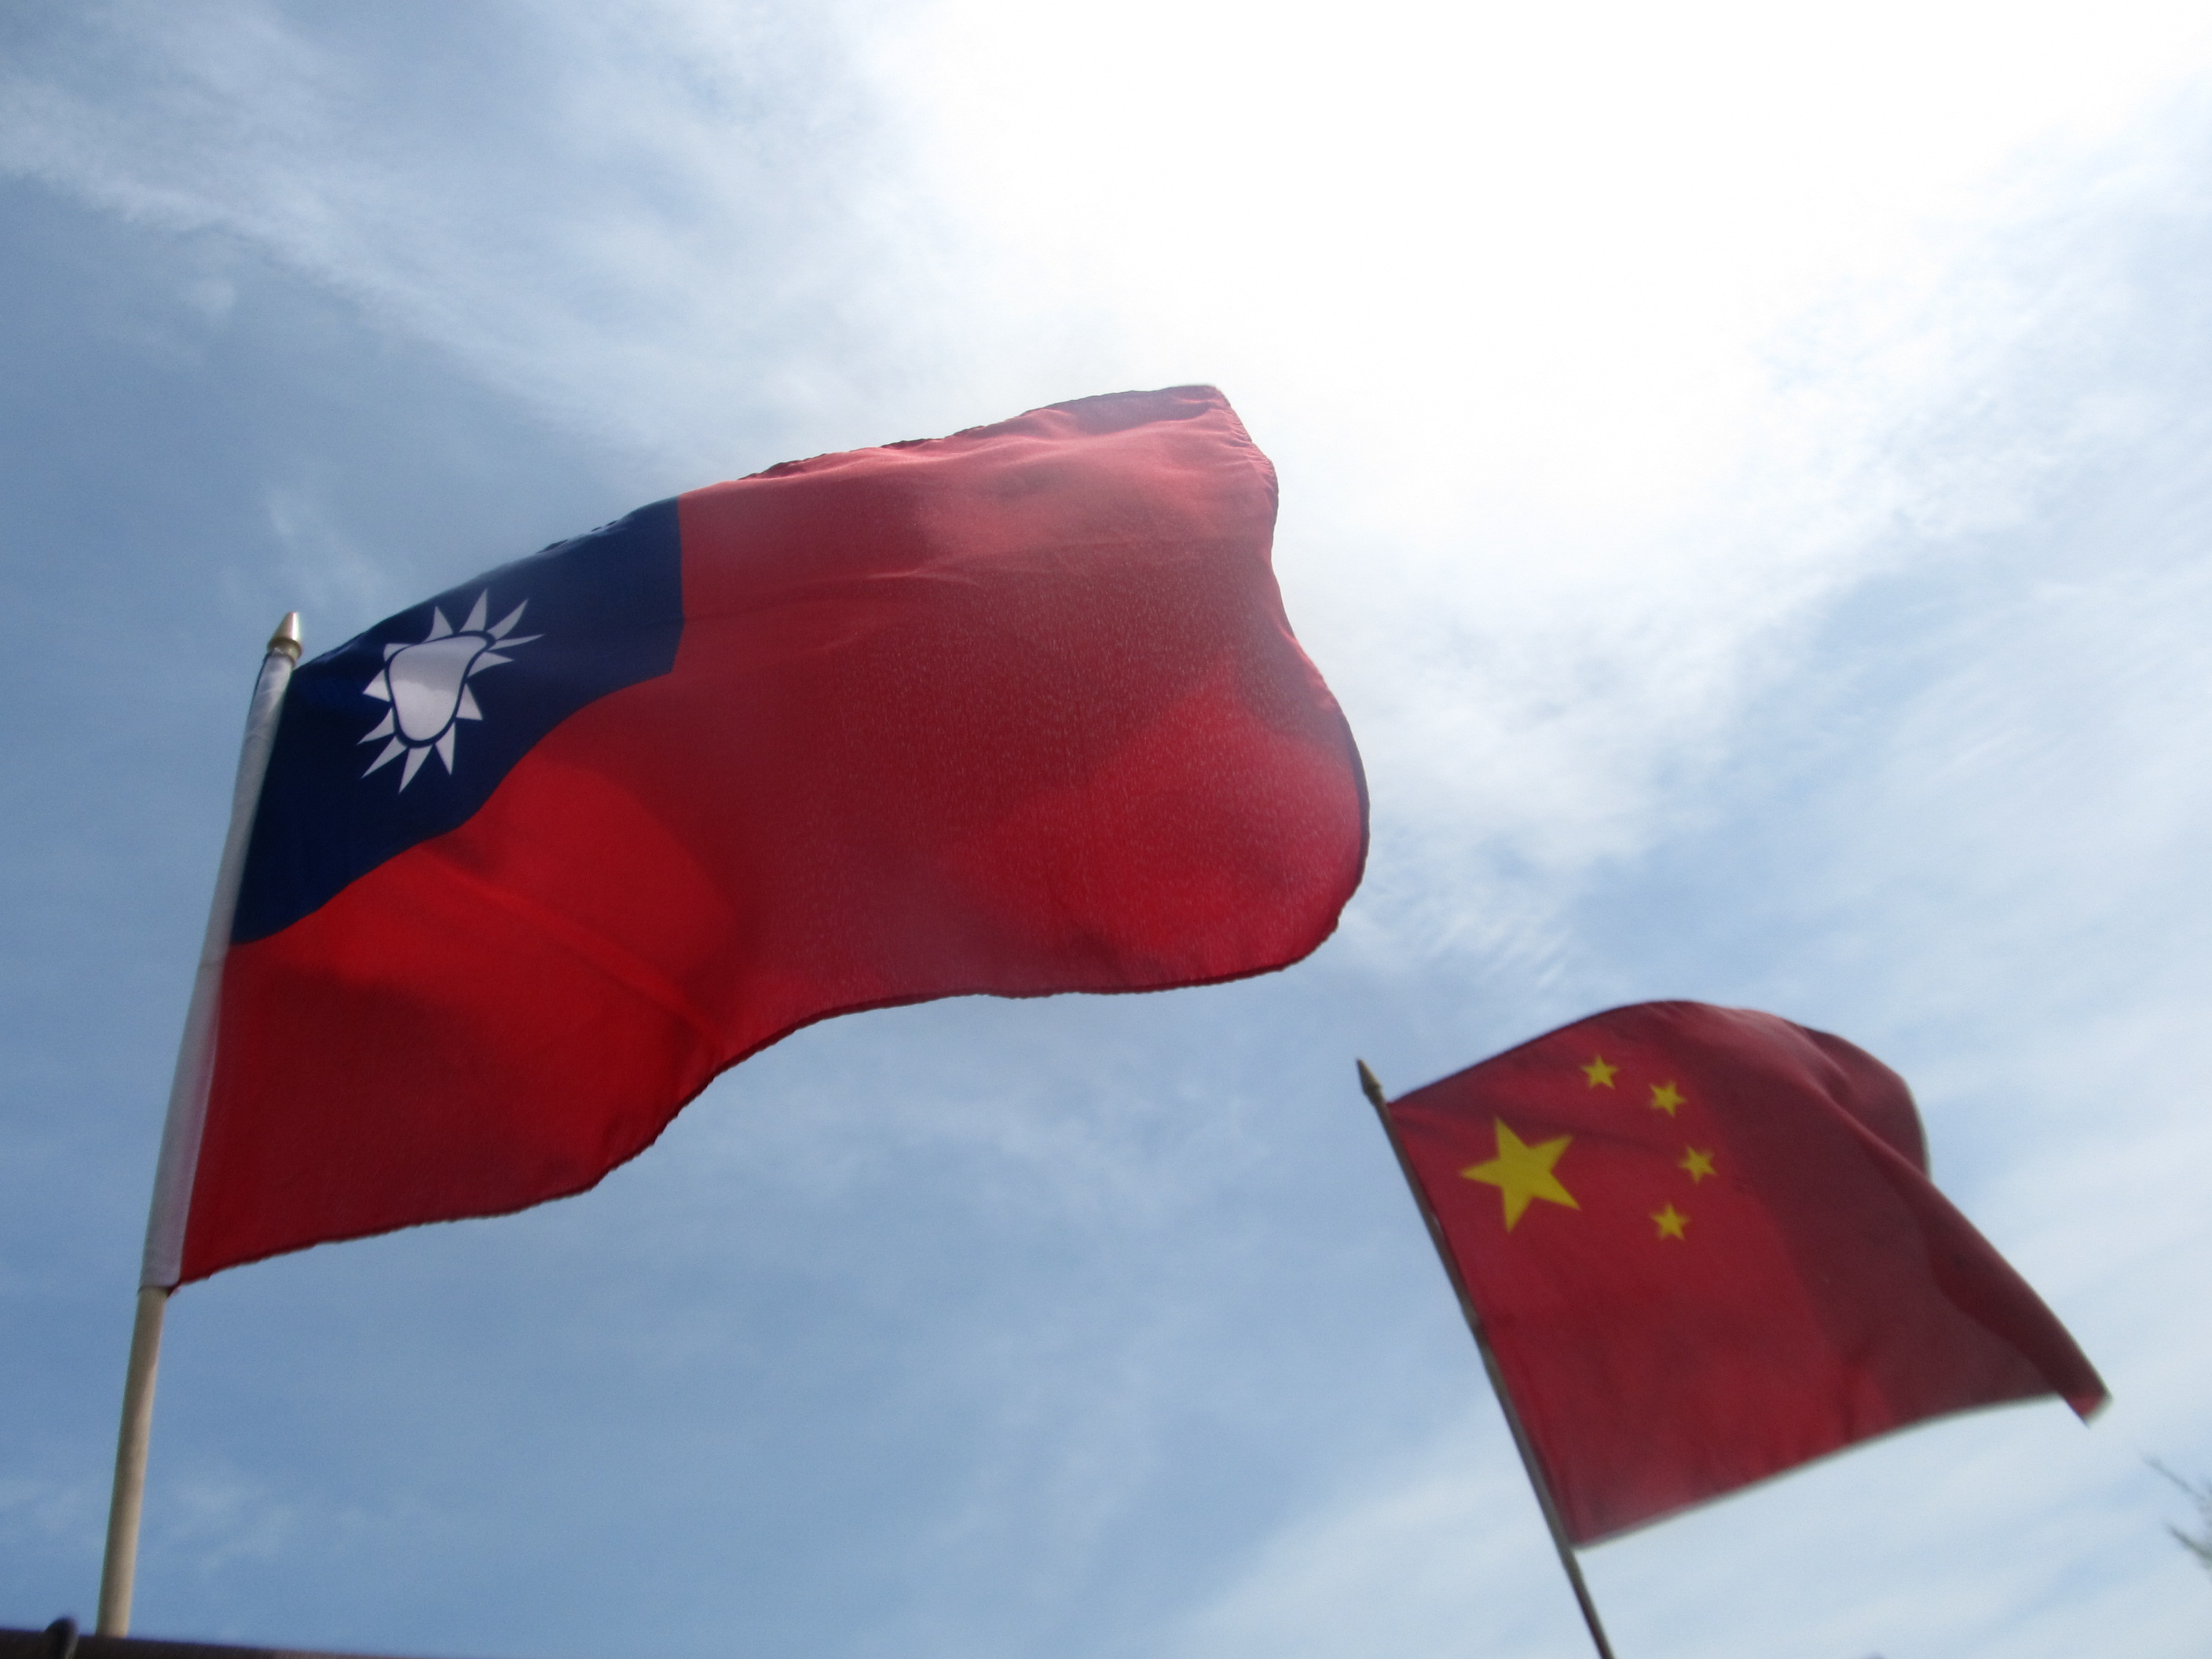 Flags of the Cross-Strait